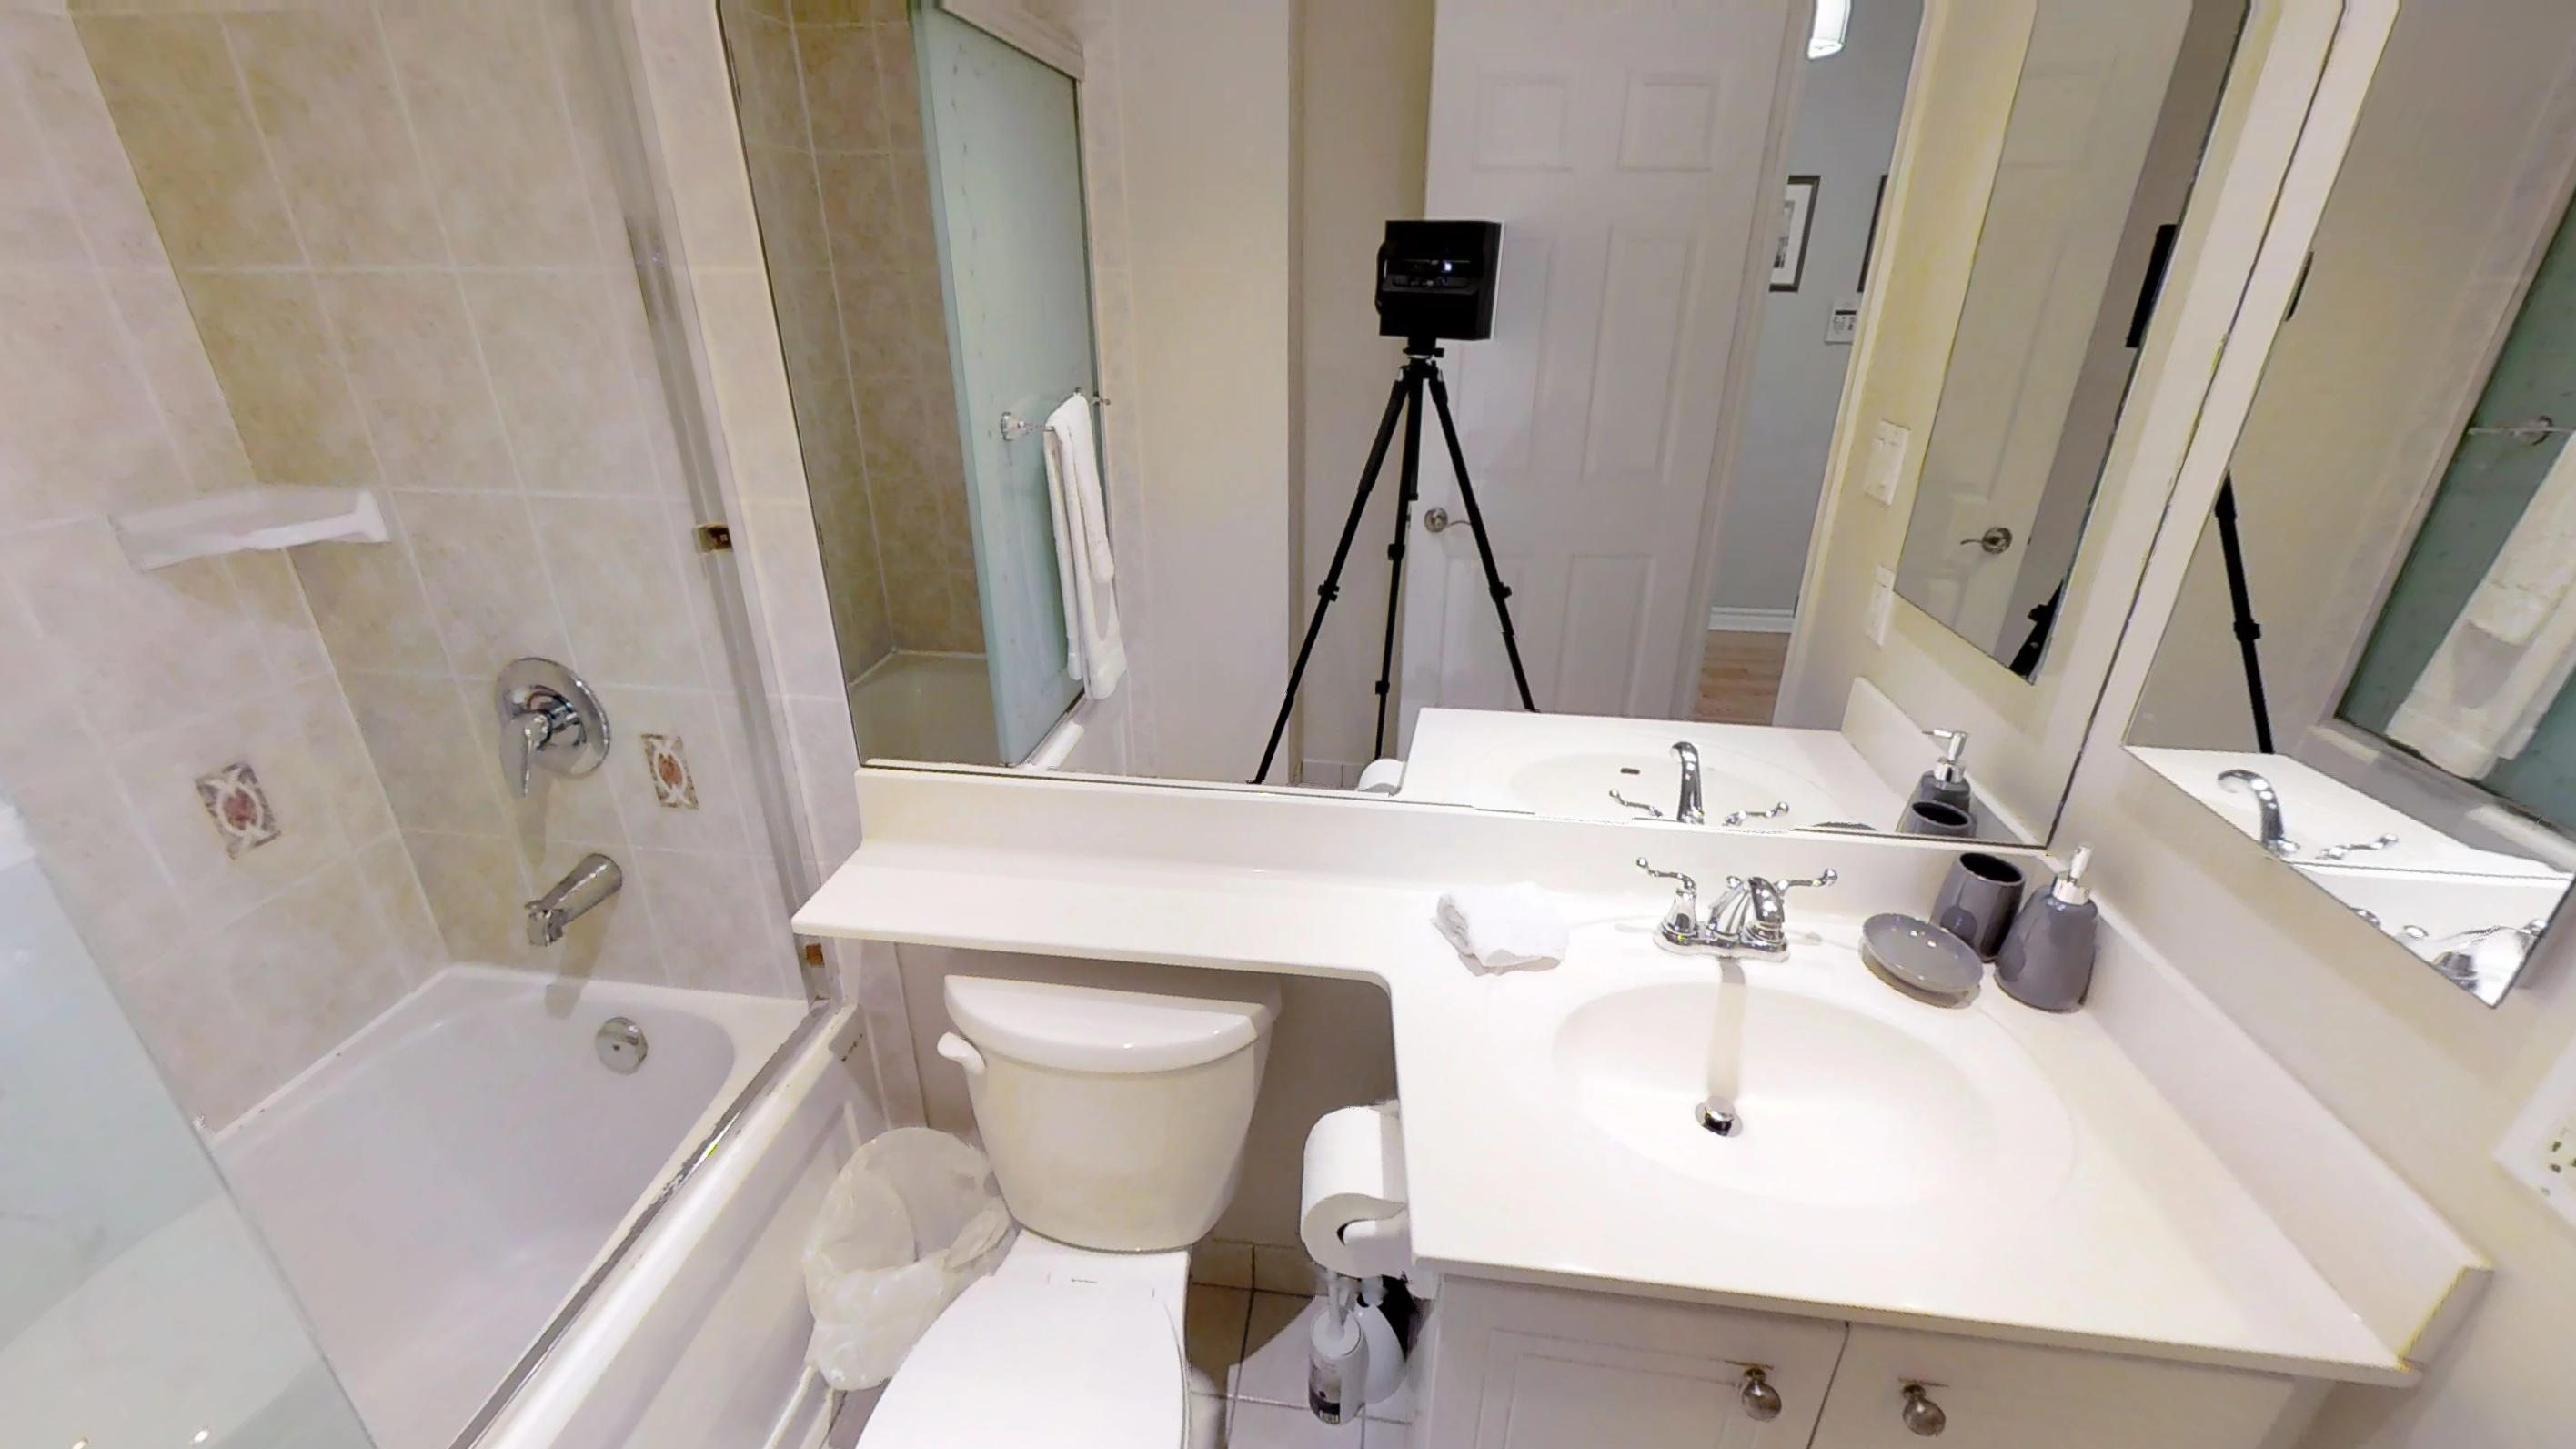 a view of the shower, countertop and toilet in the furnished bathroom of Icon G, near the CN tower in downtown Toronto.